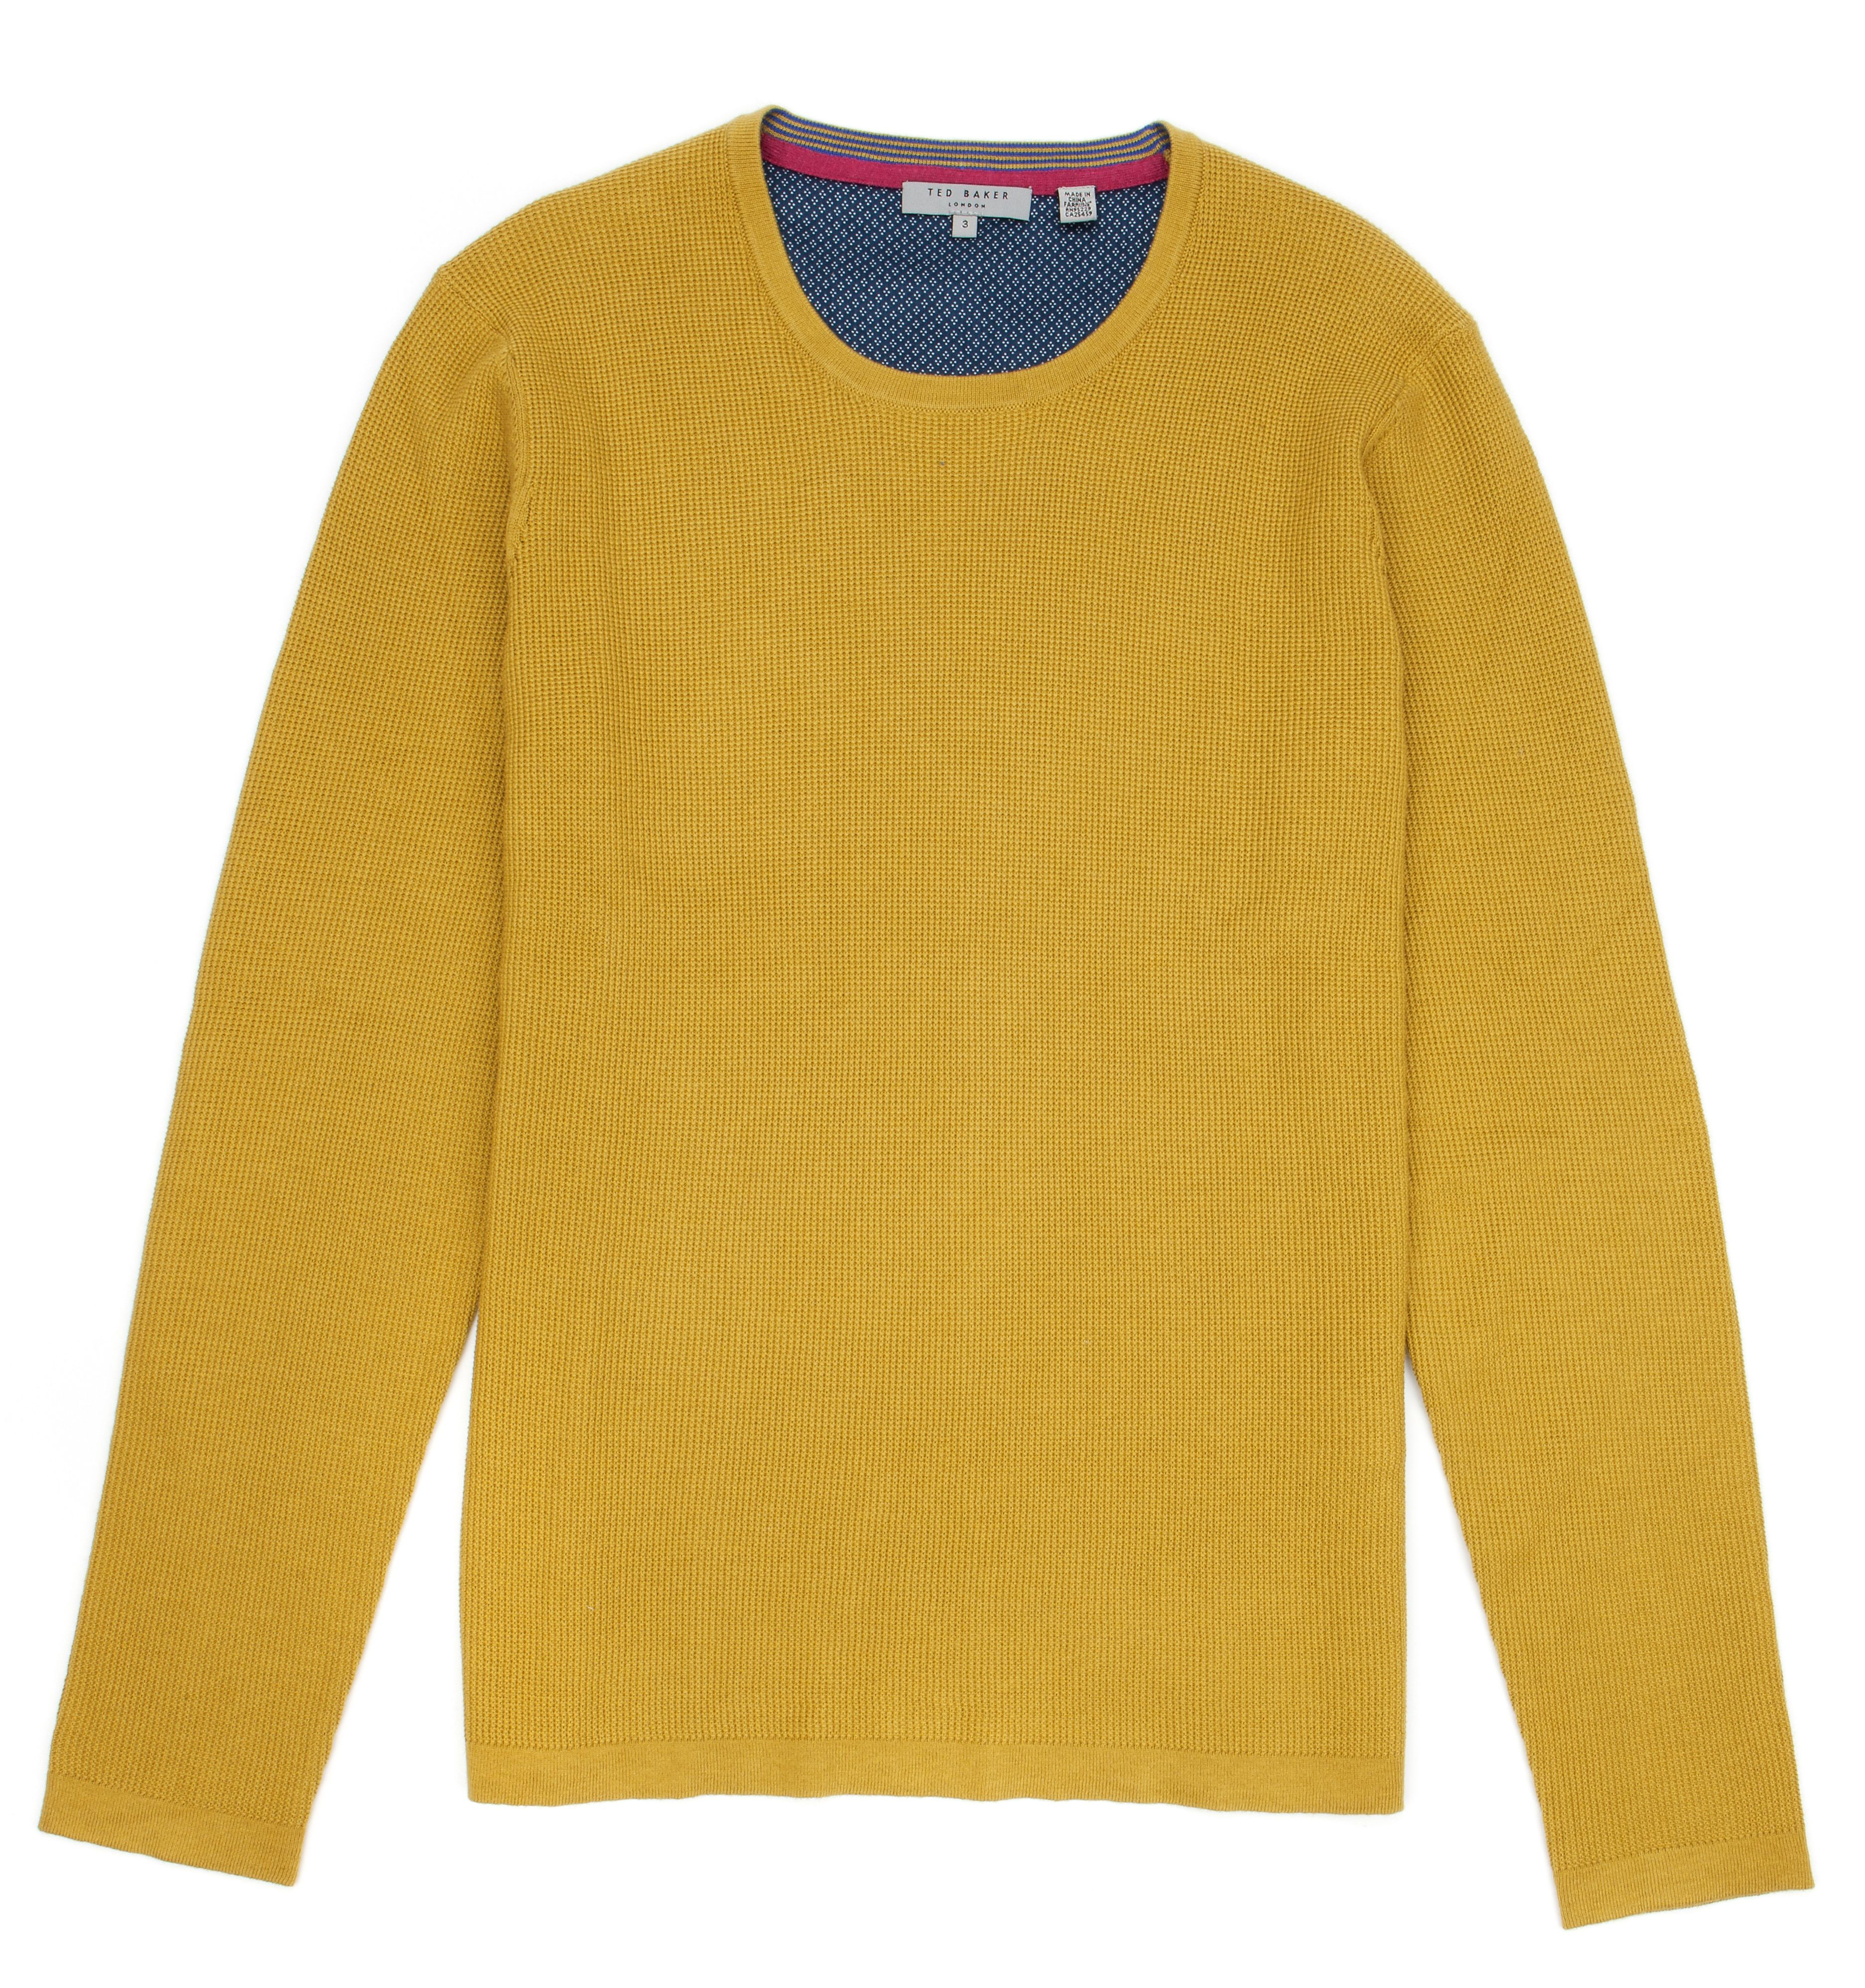 Kales textured jumper